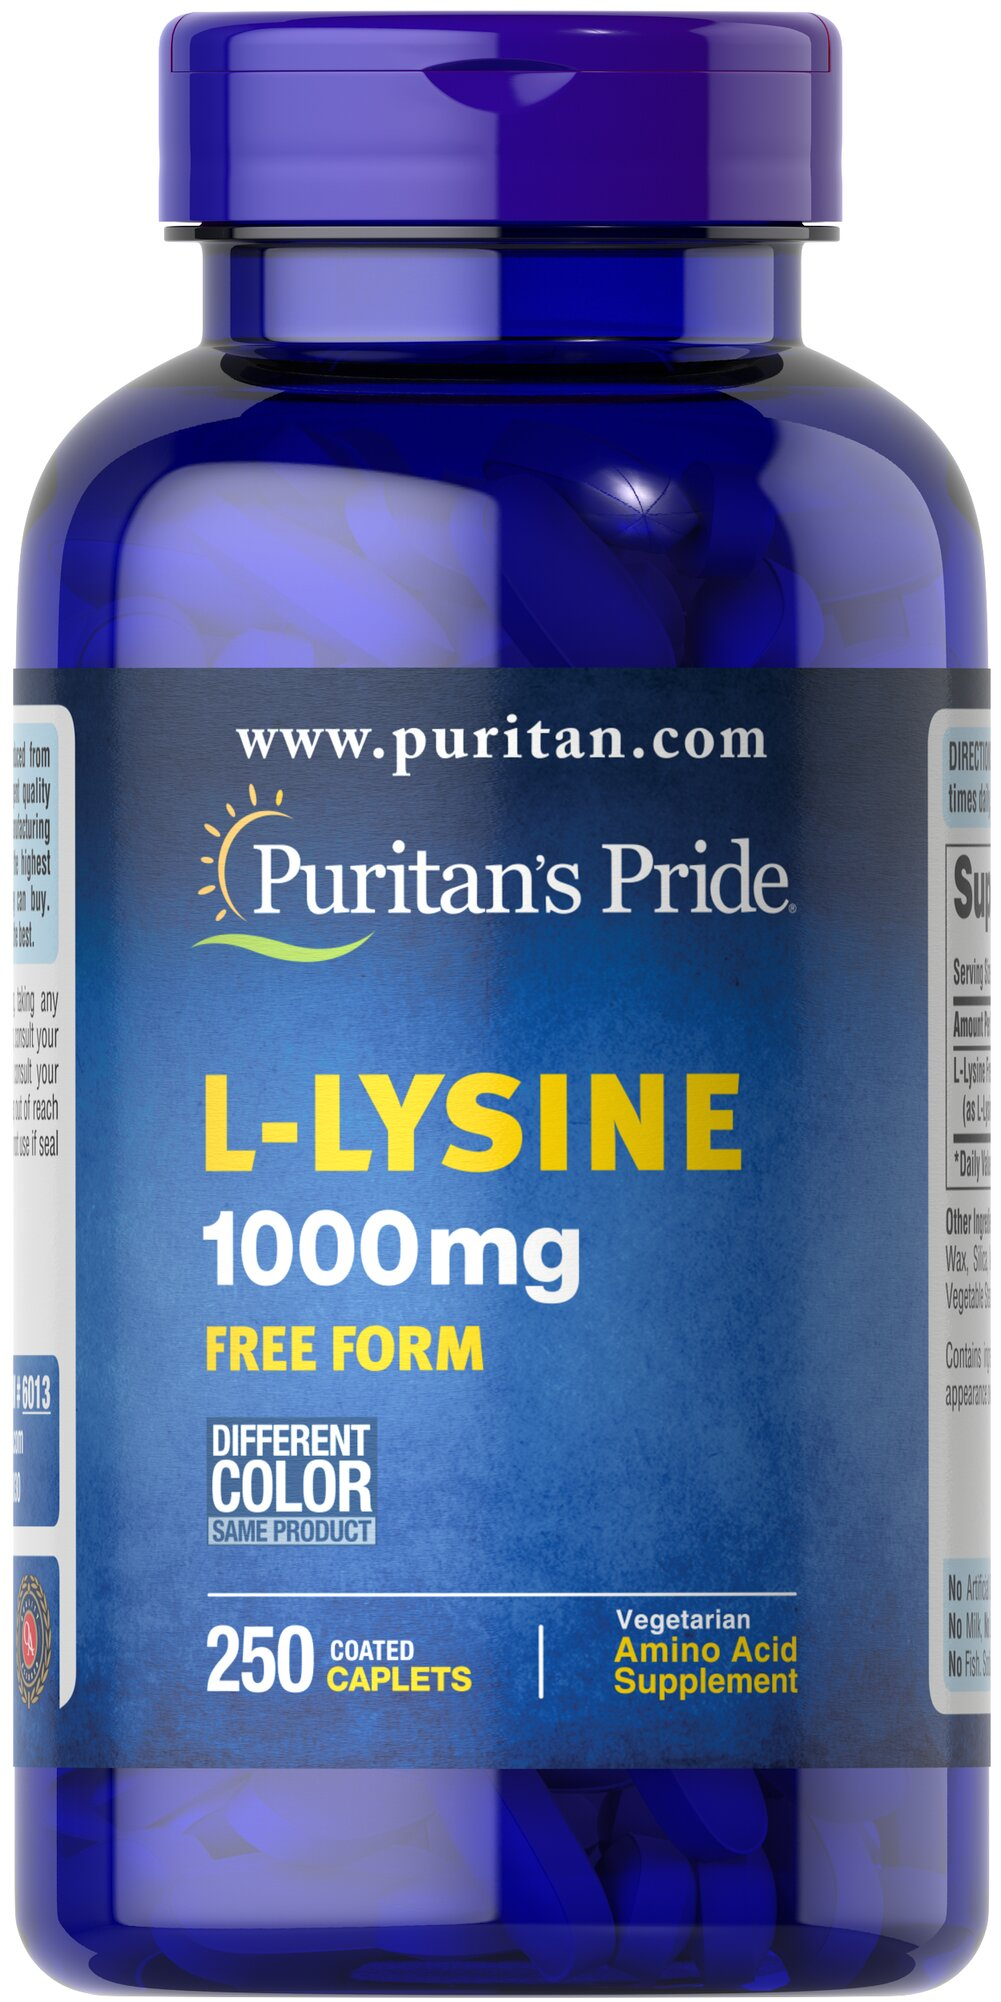 L-Lysine 1000 mg <p>For Balanced Nutrition and Health**</p><p>Lysine is an indispensable amino acid that cannot be made by the body.** Amino acids form the basis for protein, which helps construct and maintain the critical structures in the body.** Lysine is also used for the health and integrity of skin.**</p> 250 Caplets 1000 mg $27.99